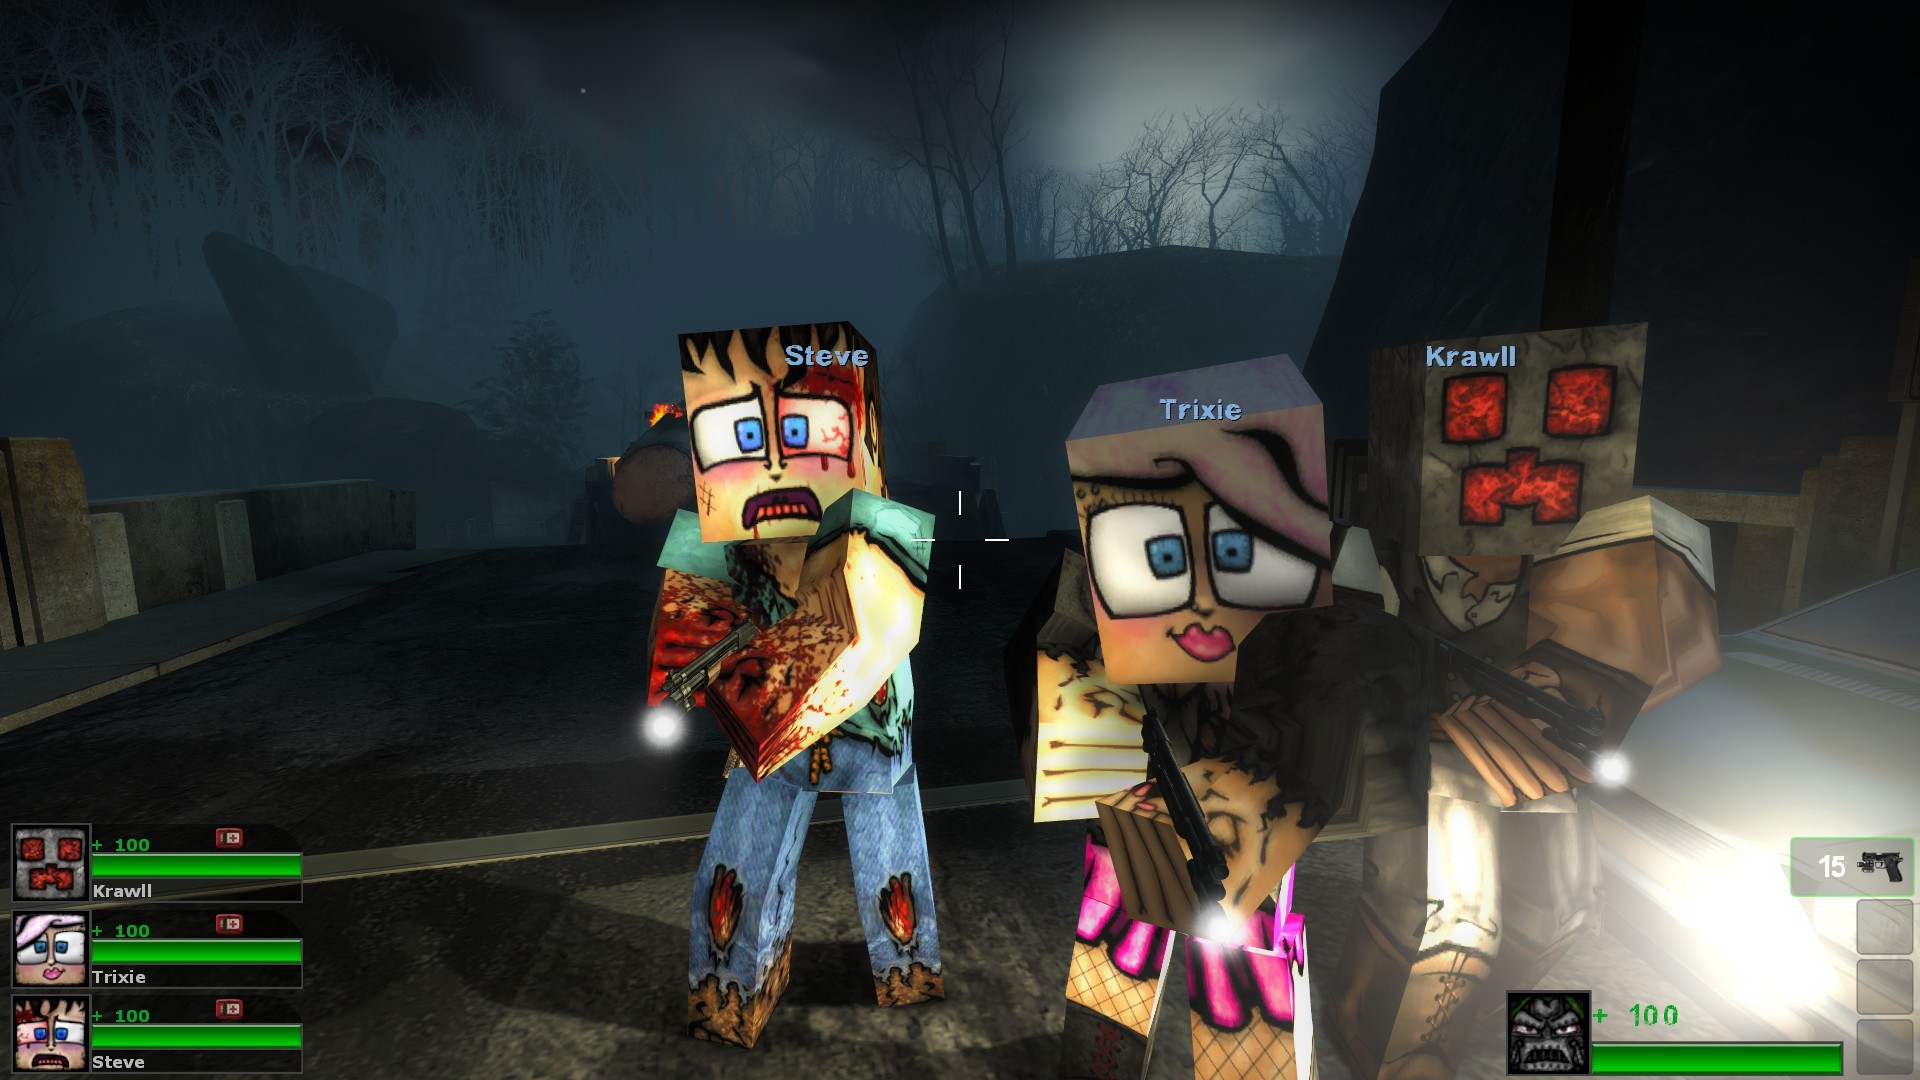 Zombies Animated Wallpaper Hd Vondoomcraft For L4d2 Gamebanana Works In Progress